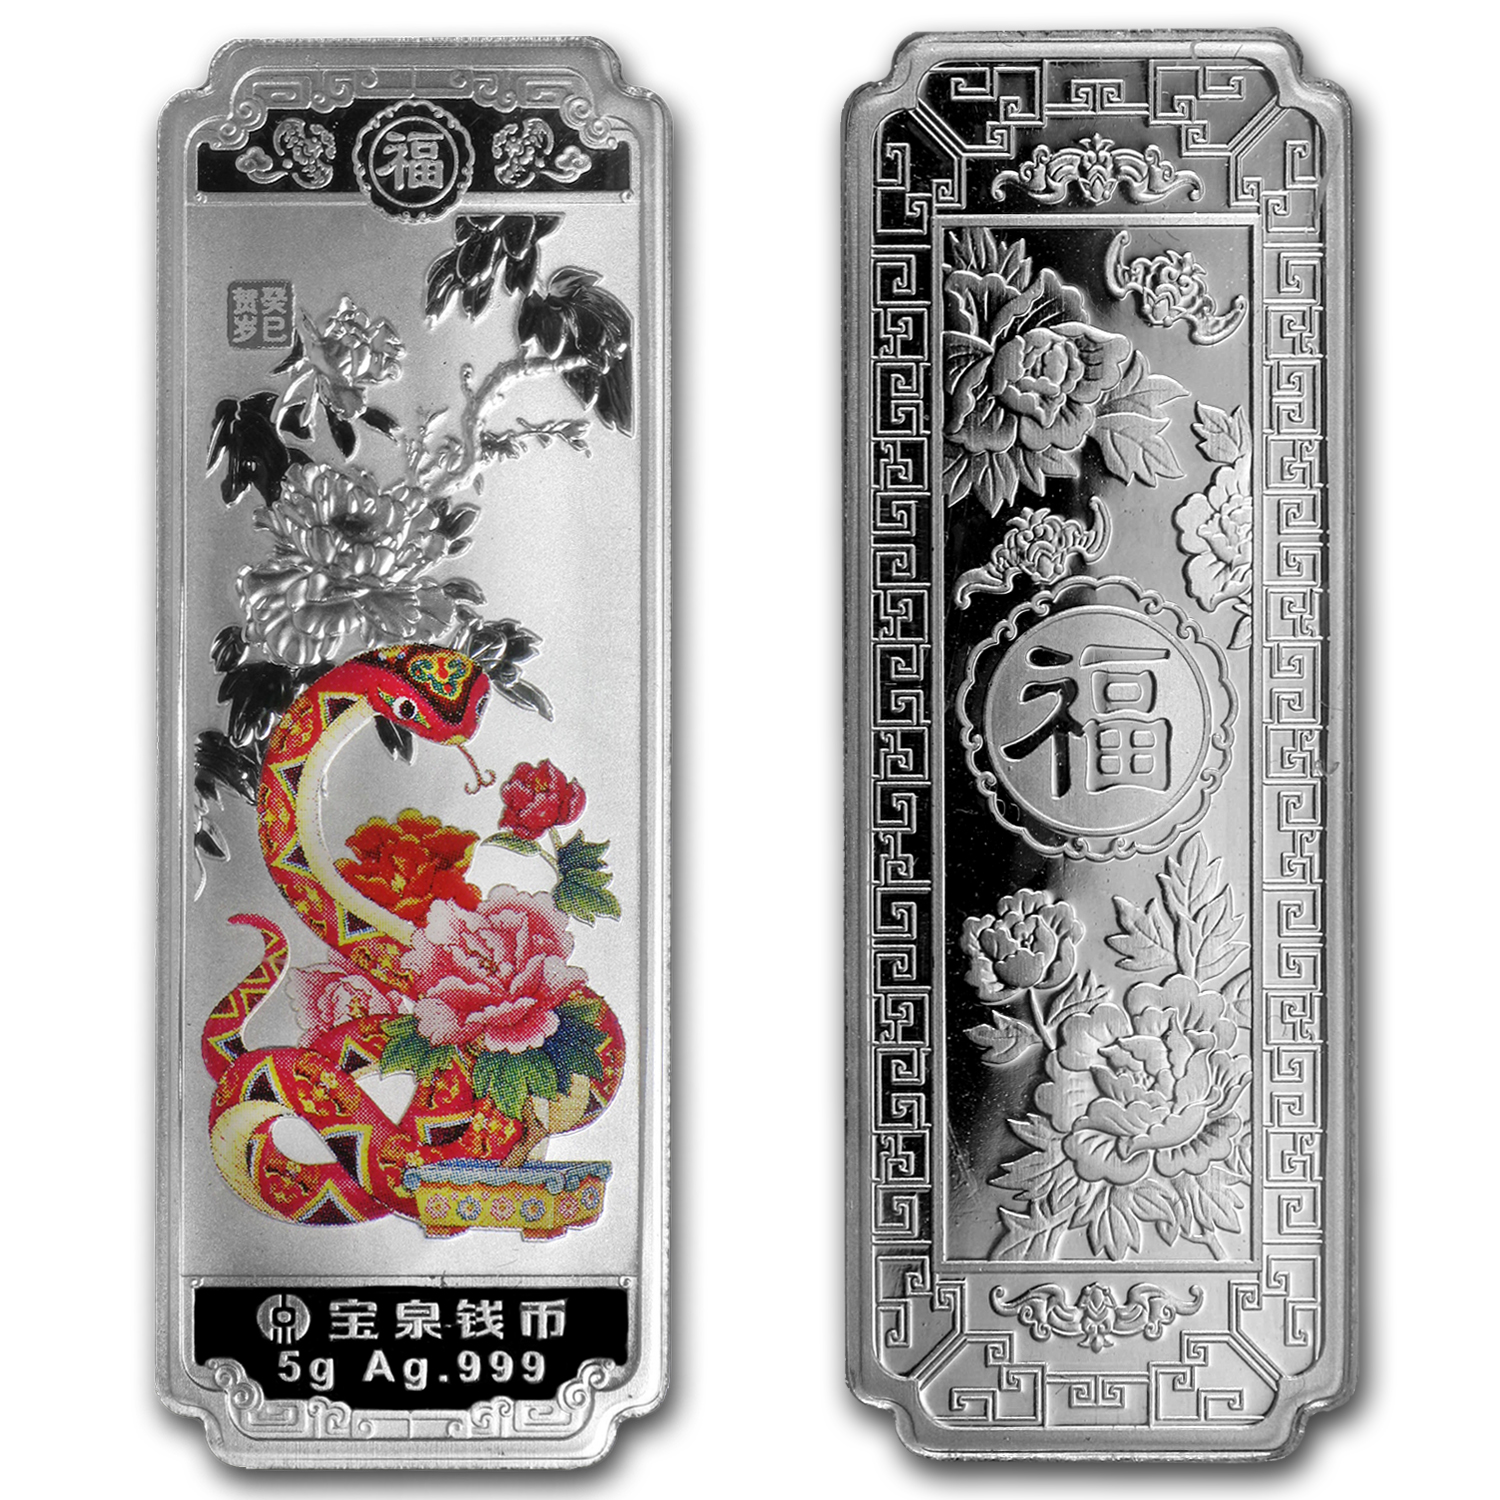 2013 5 gram Silver China Year of the Snake Bar (Colorized)